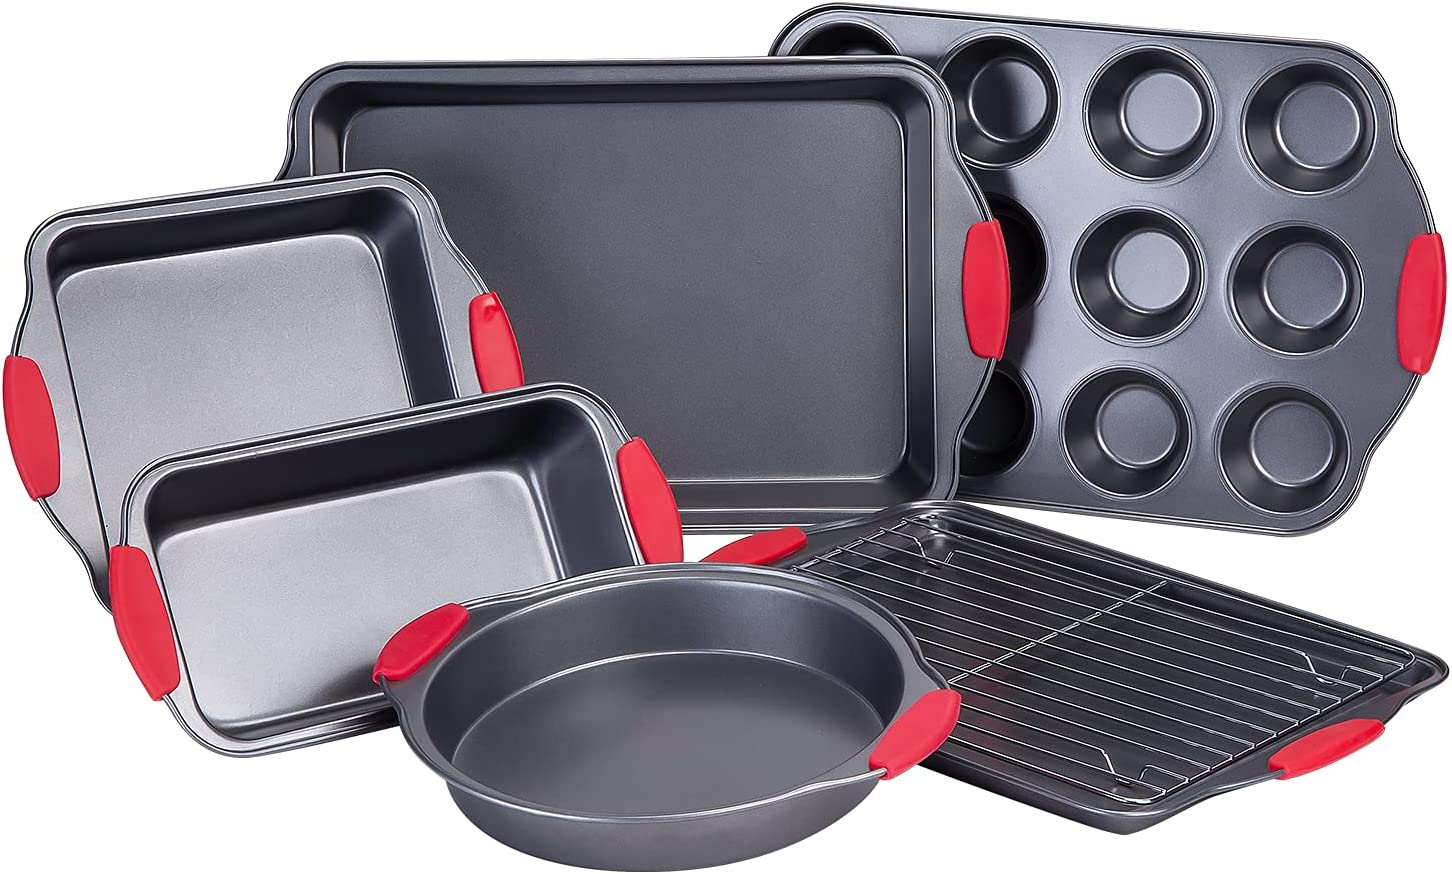 Nuovoo 7 Piece Baking Pan Set Non-Stick Carbon Steel Bakeware Set with Red Silicone Handles, Cookie Sheet, Loaf Pan, Muffin Pan, Roasting Pan,Cake Pans Oven Safe,Black